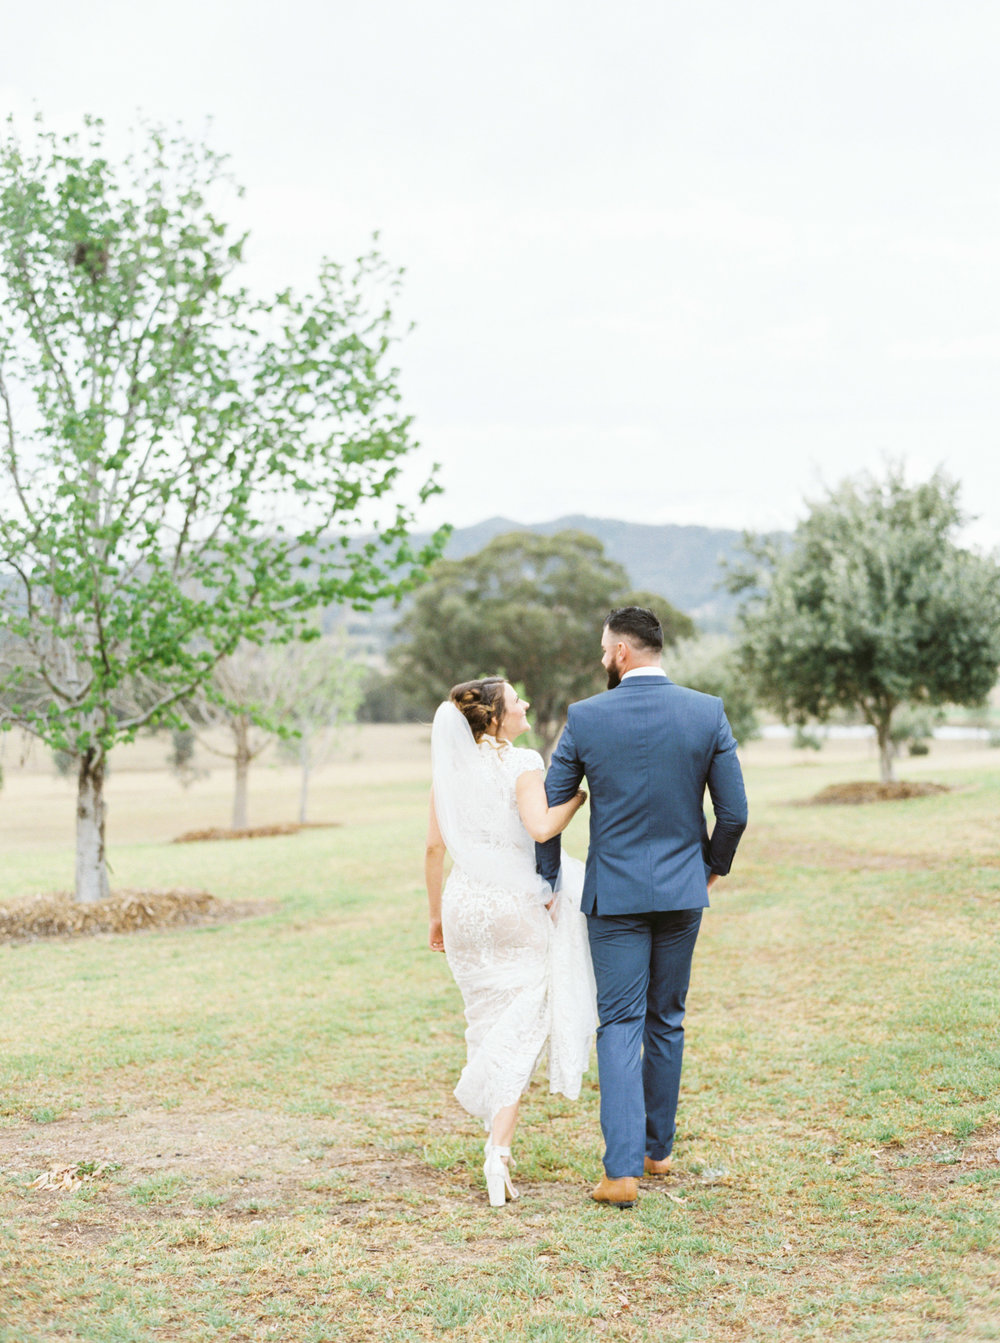 00346- Fine Art Film Hunter Valley Mudgee Destination Wedding Photographer Sheri McMahon.jpg